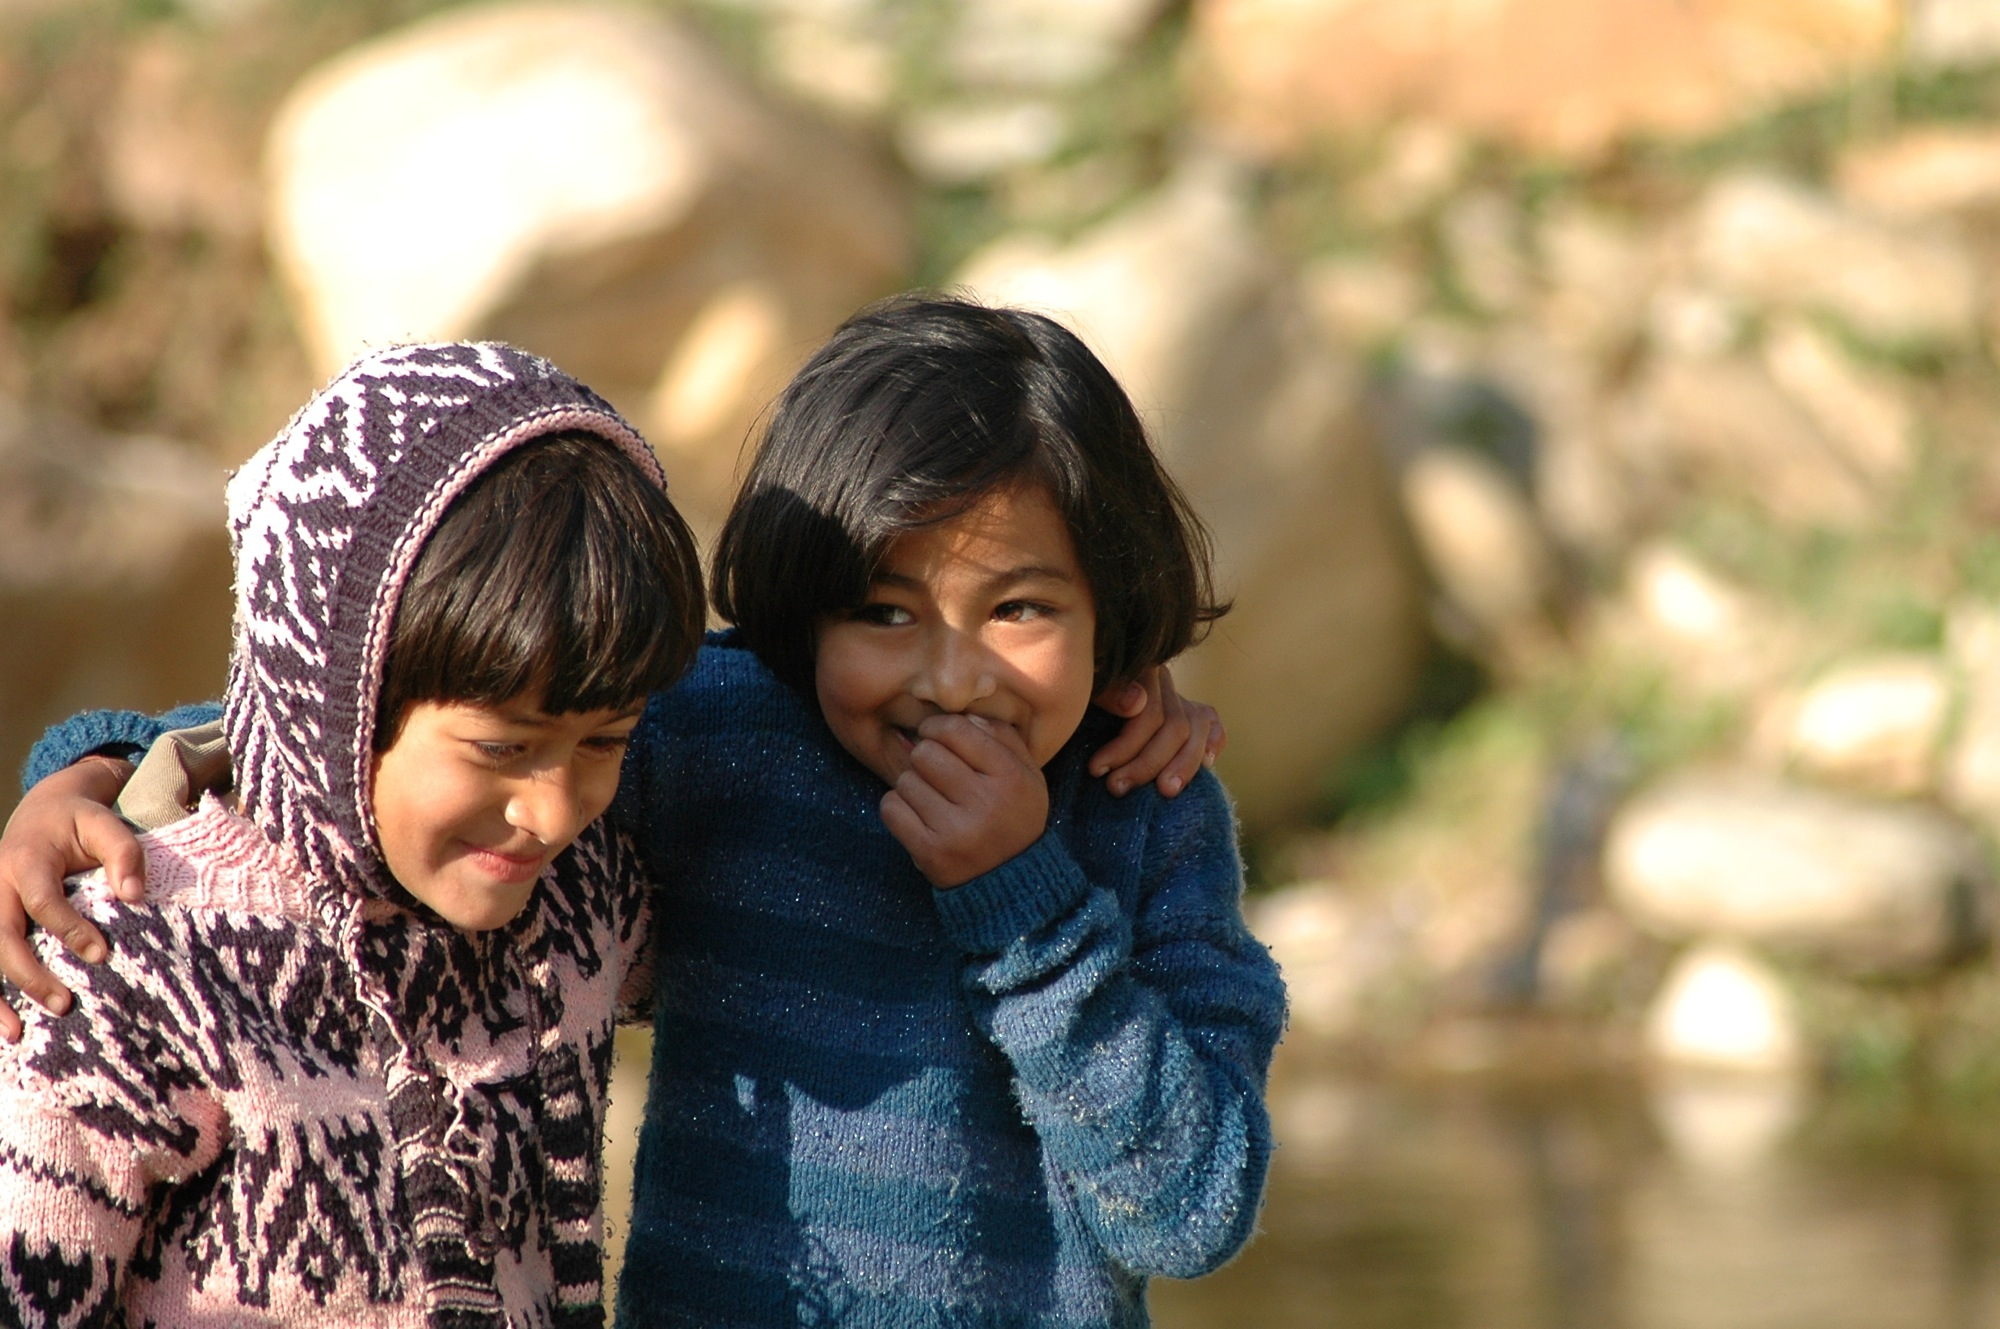 Two little girls share a secret (or a joke) while crossing a stream in Ramgarh village, Uttarakhand.